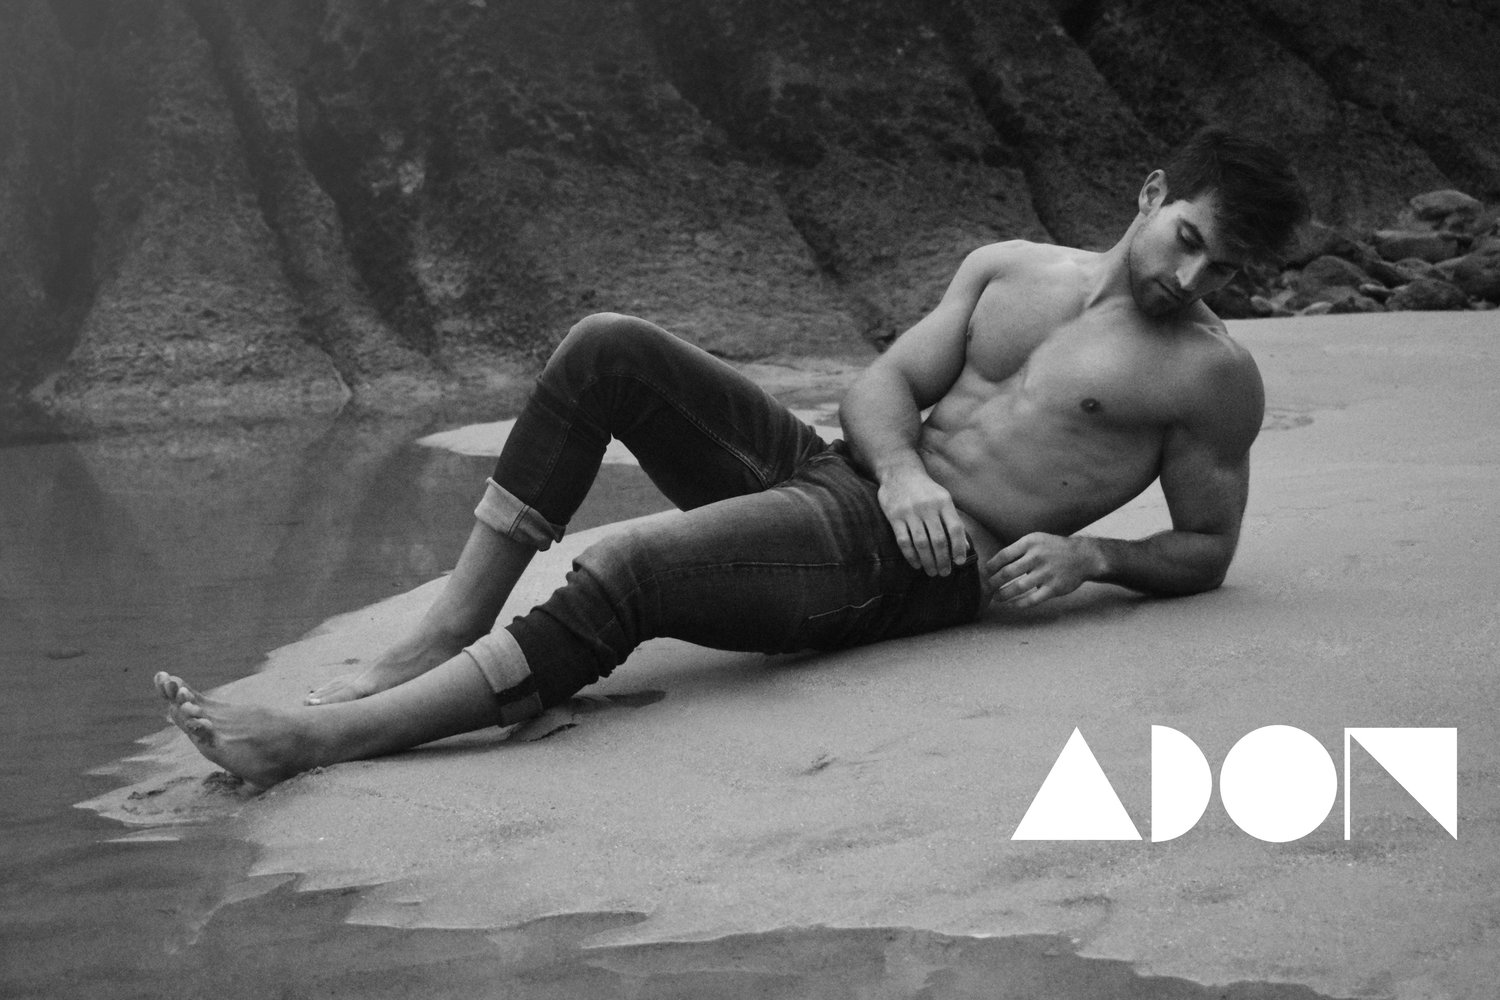 Adon Exclusive: Model Diego Caballero By Manu Bermúdez